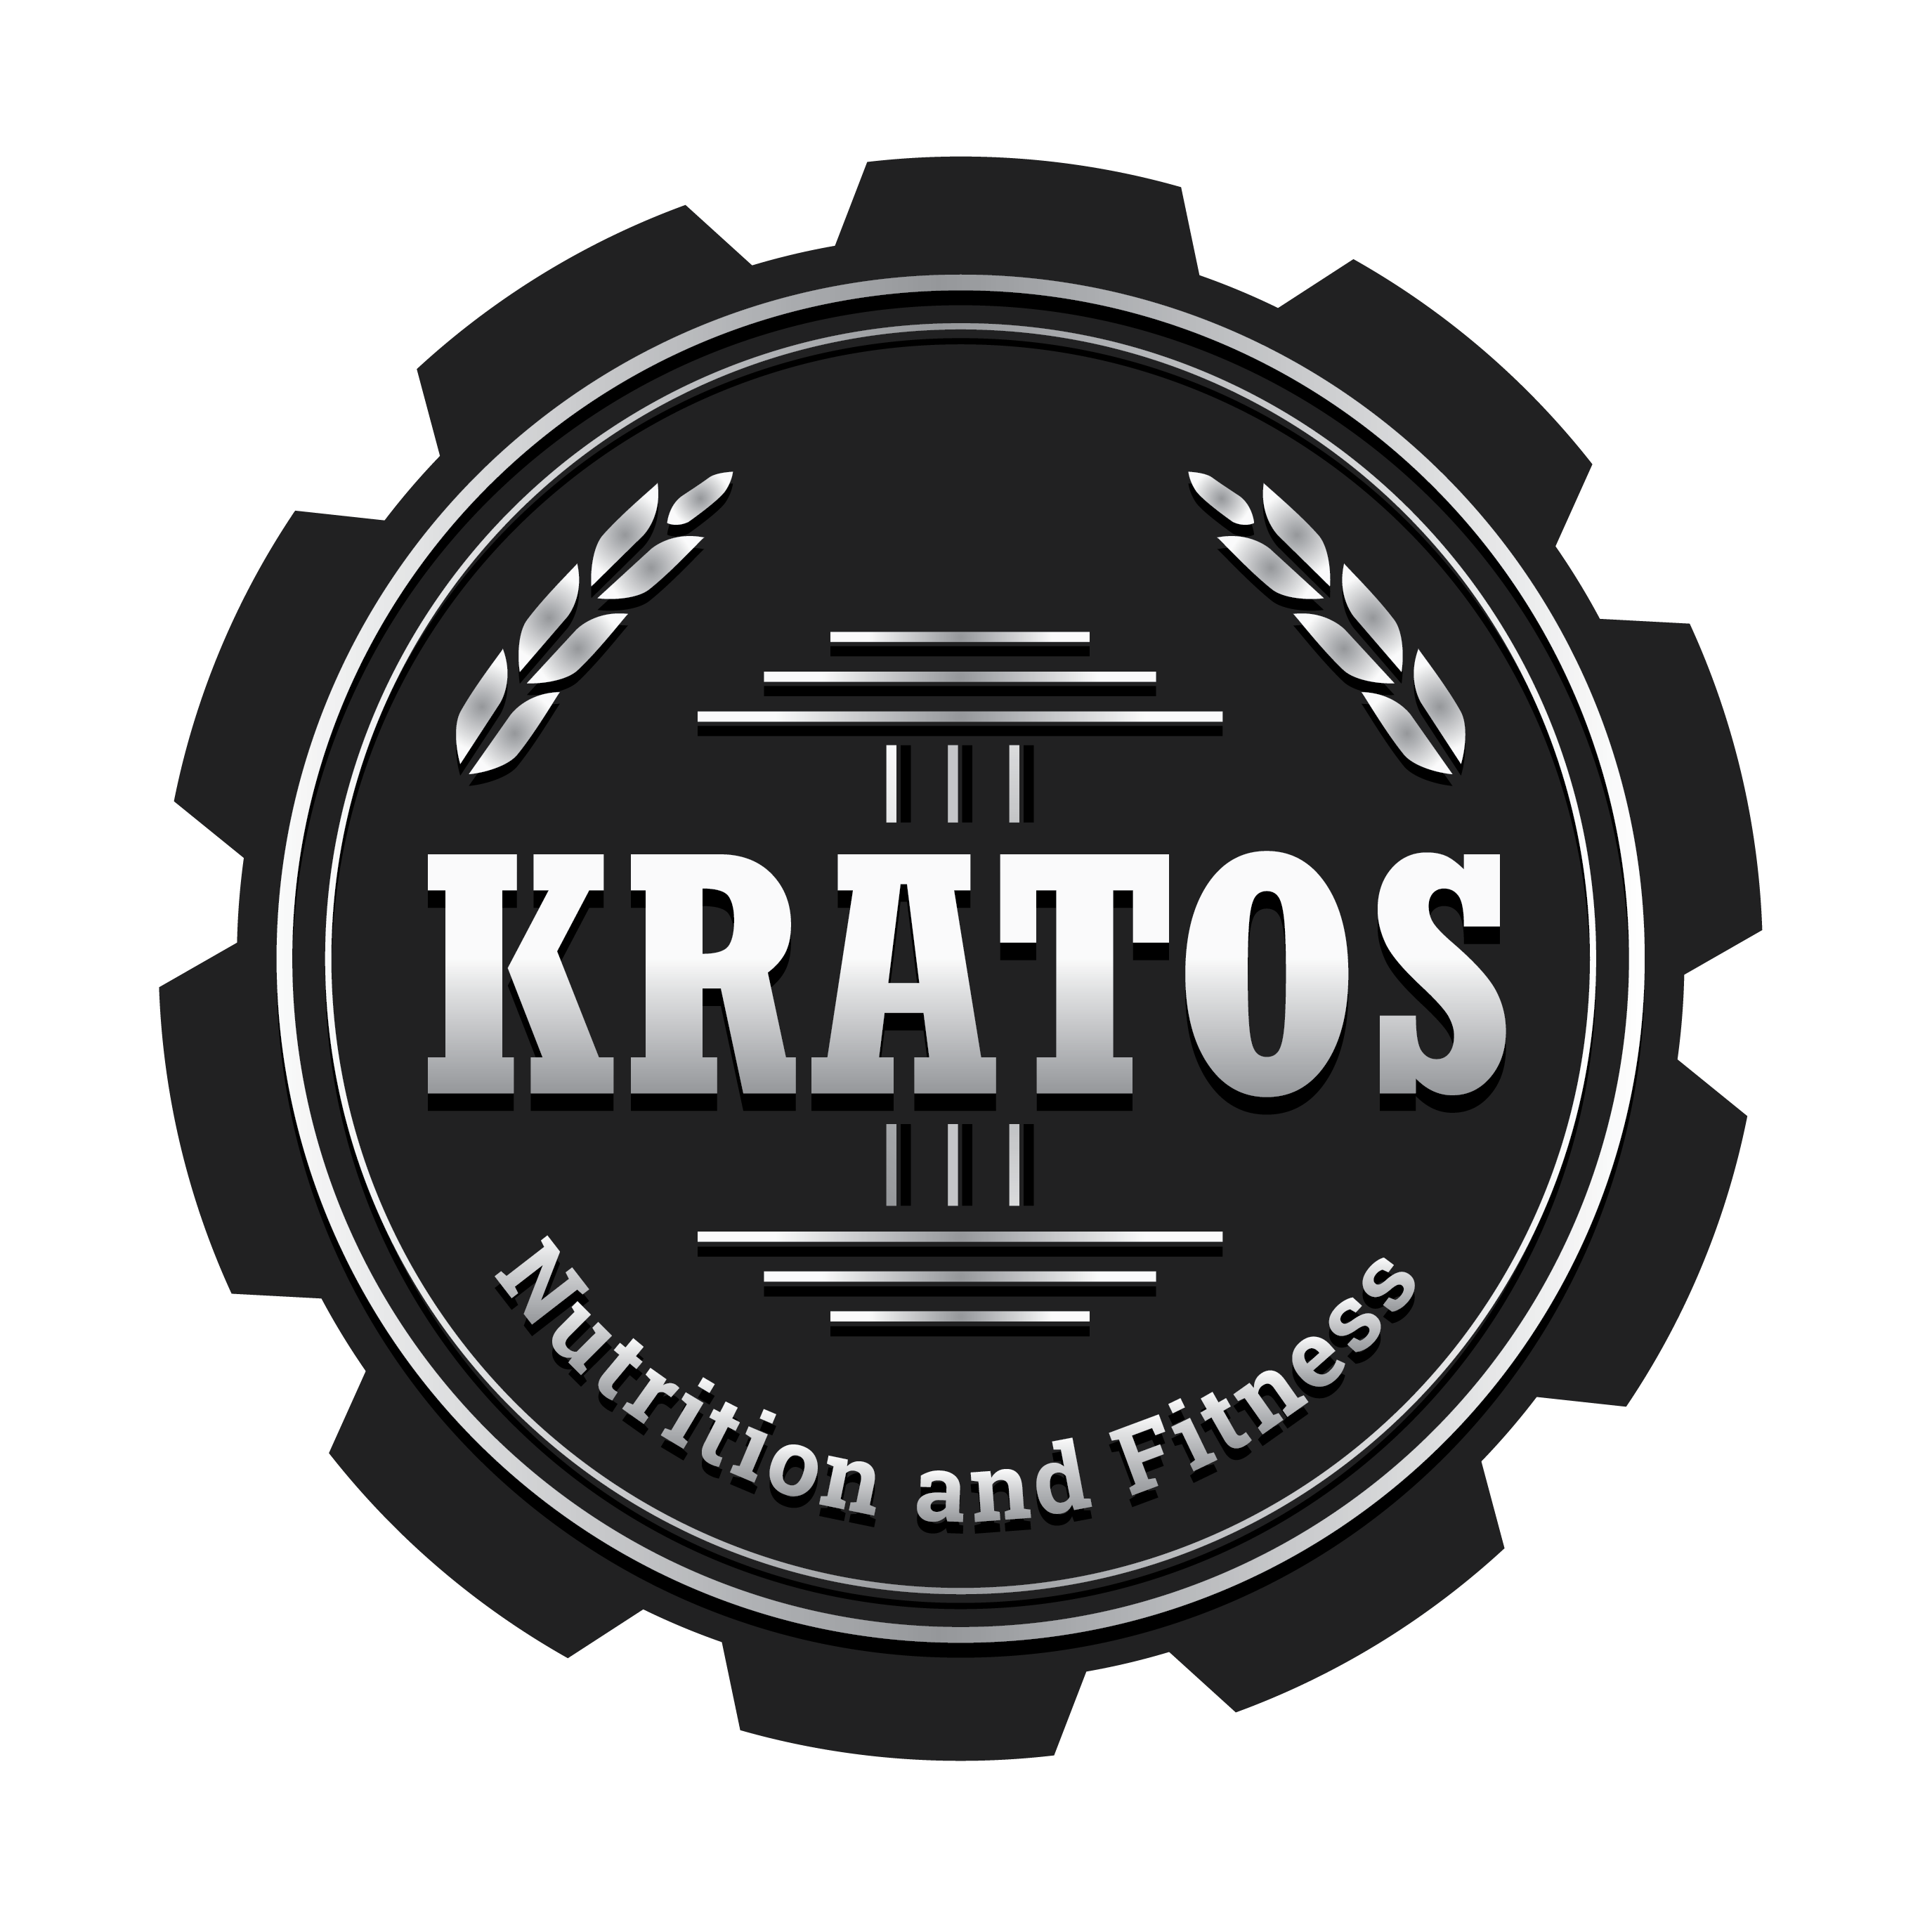 Kratos Nutrition and Fitness - Brandon, FL 33510 - (321)794-1215 | ShowMeLocal.com